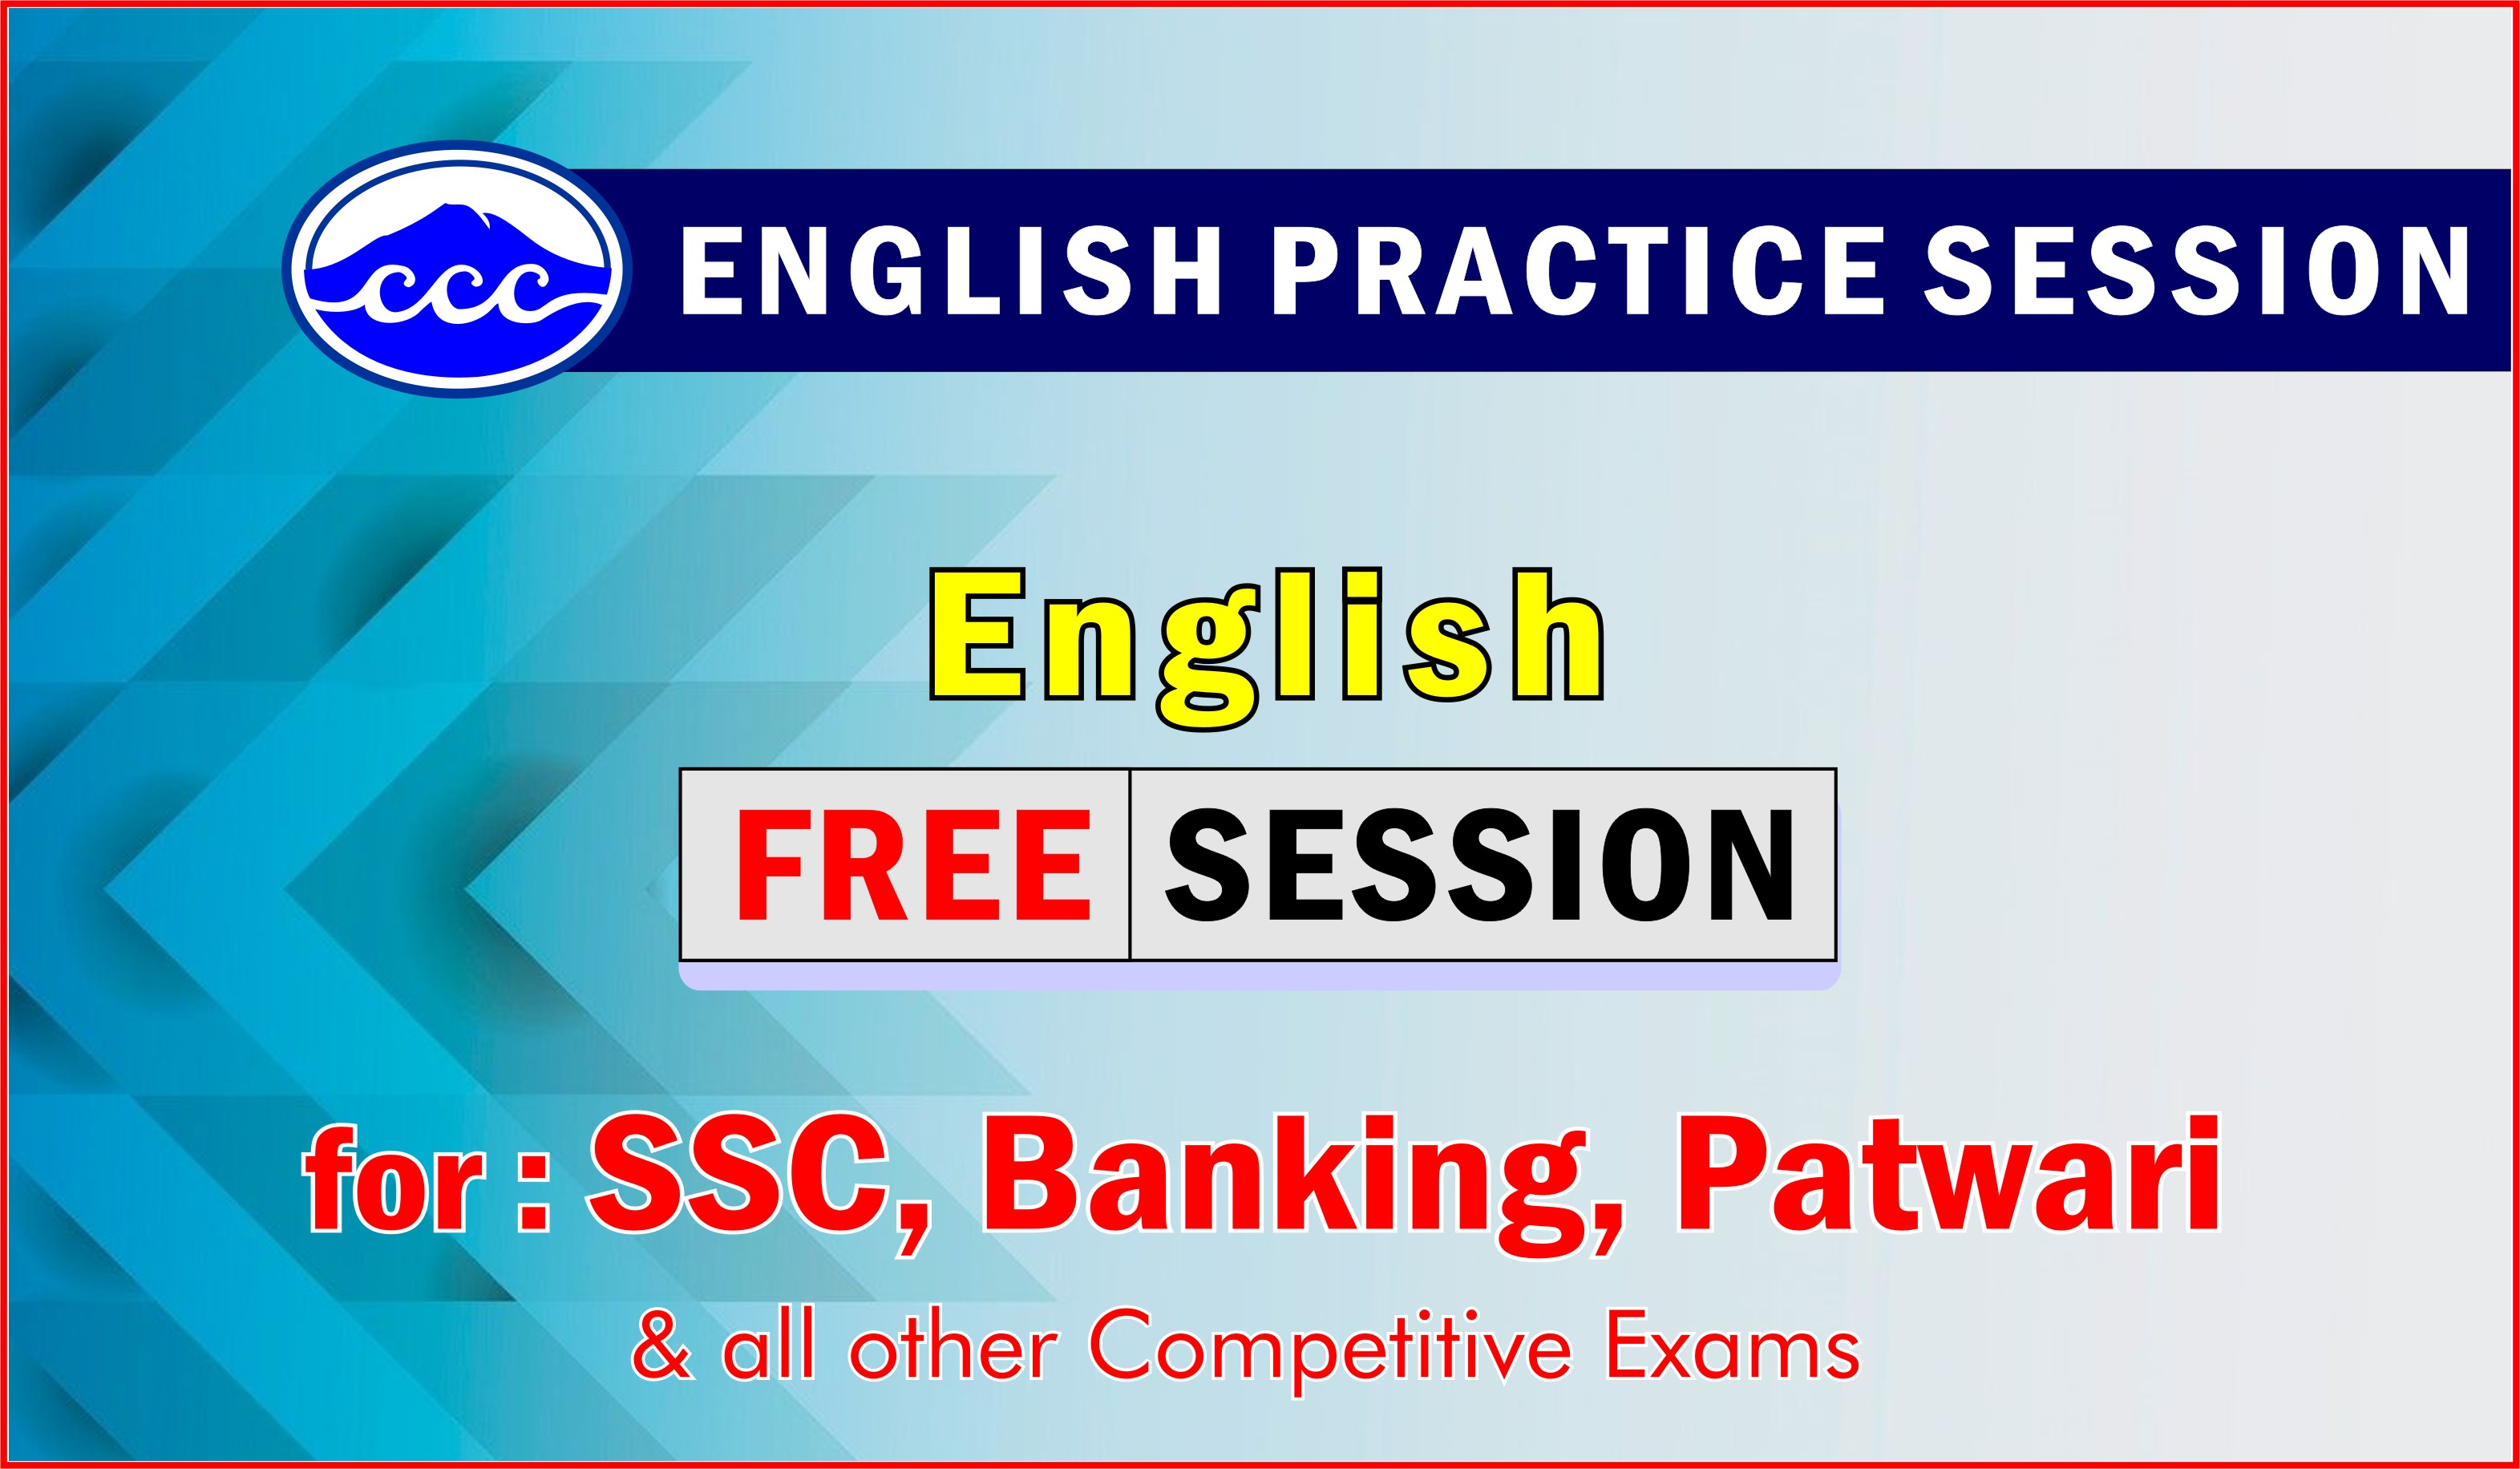 English Practice Session - 3